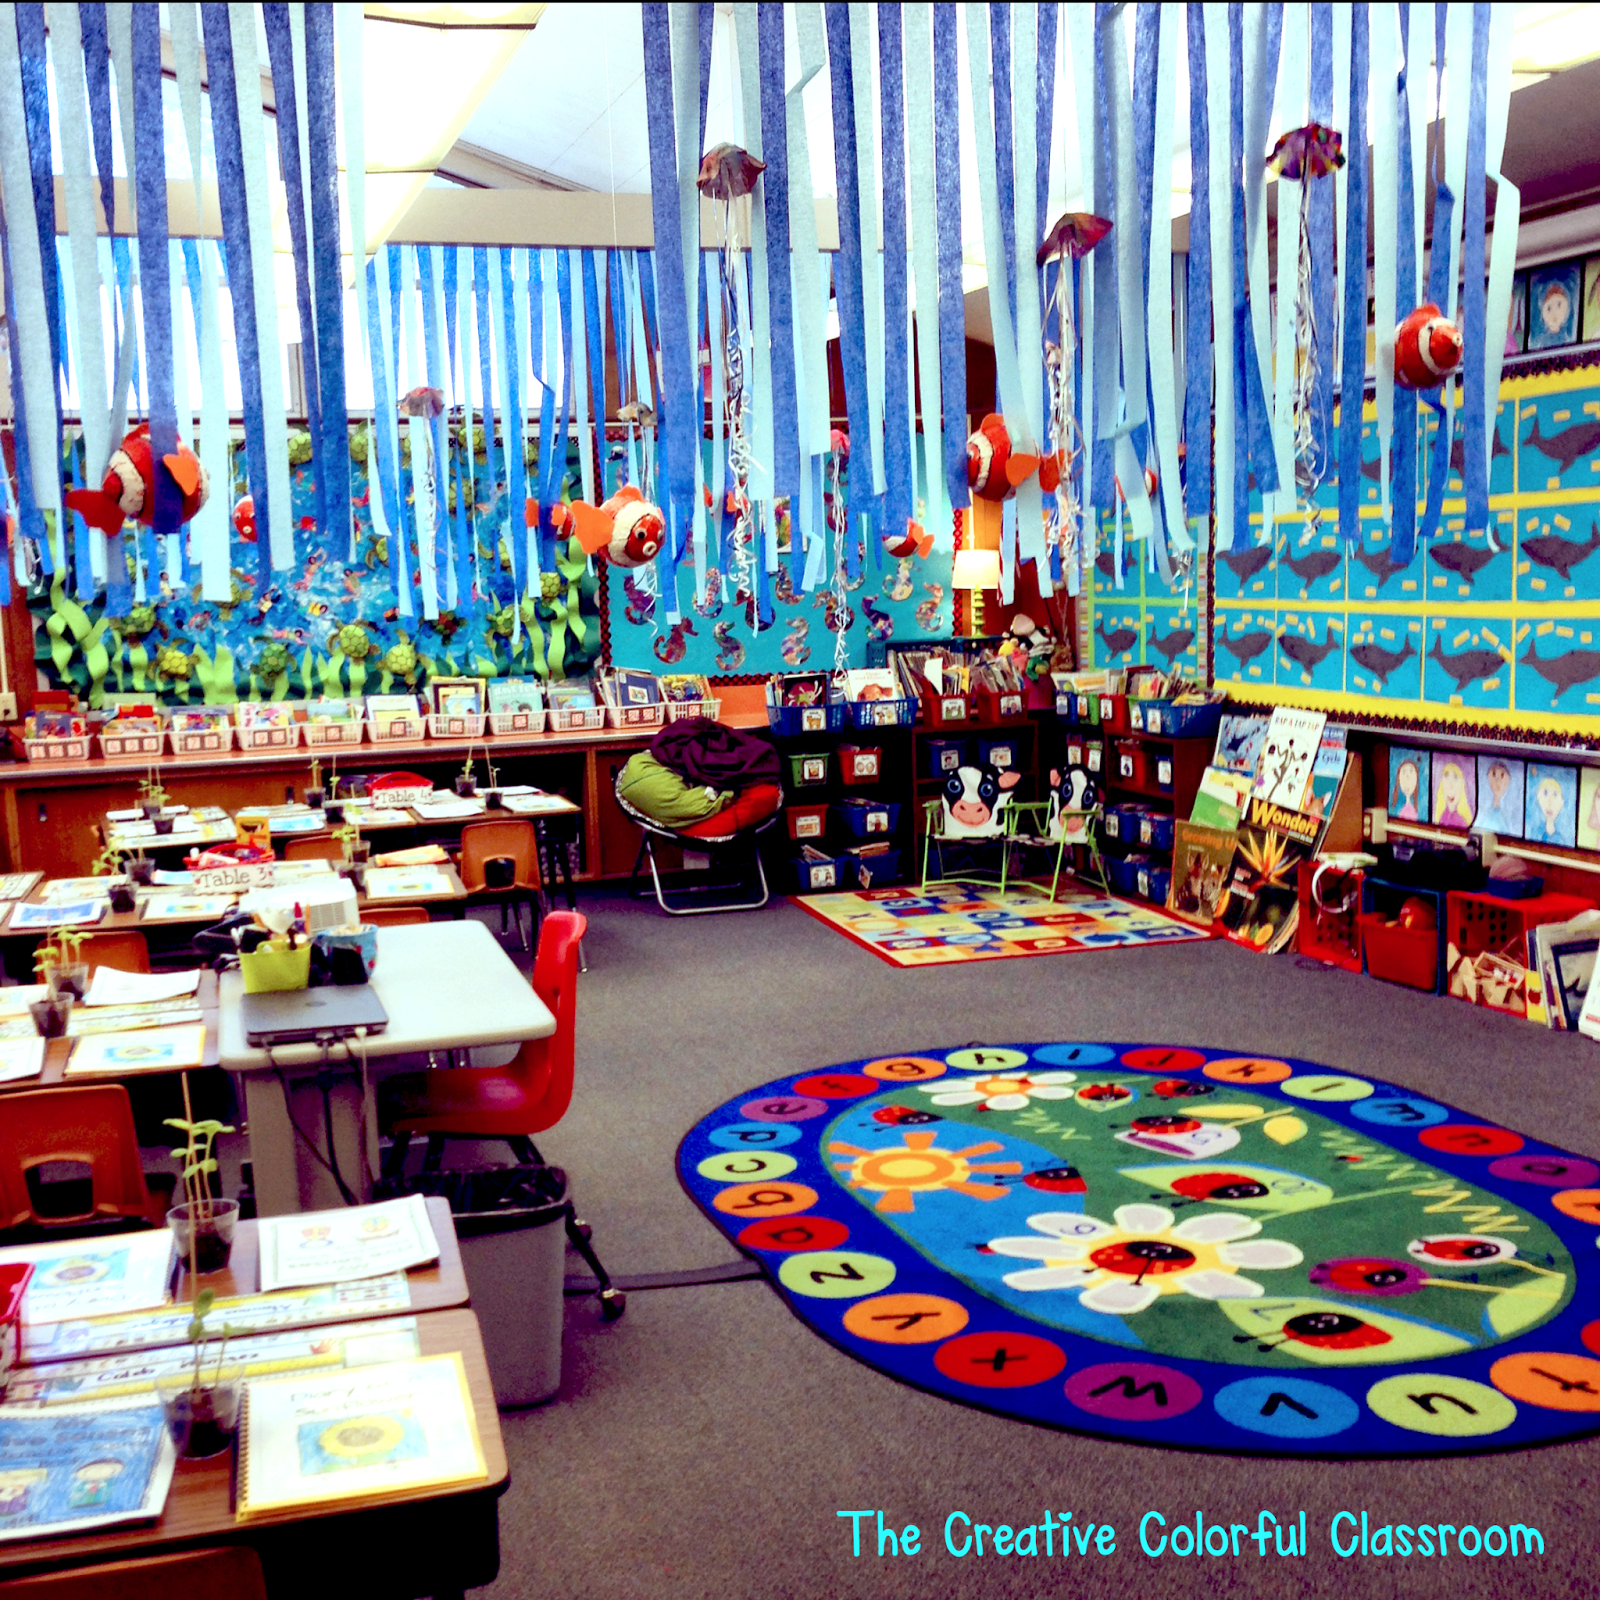 Classroom Decoration Colorful ~ The creative colorful classroom open house and our ocean